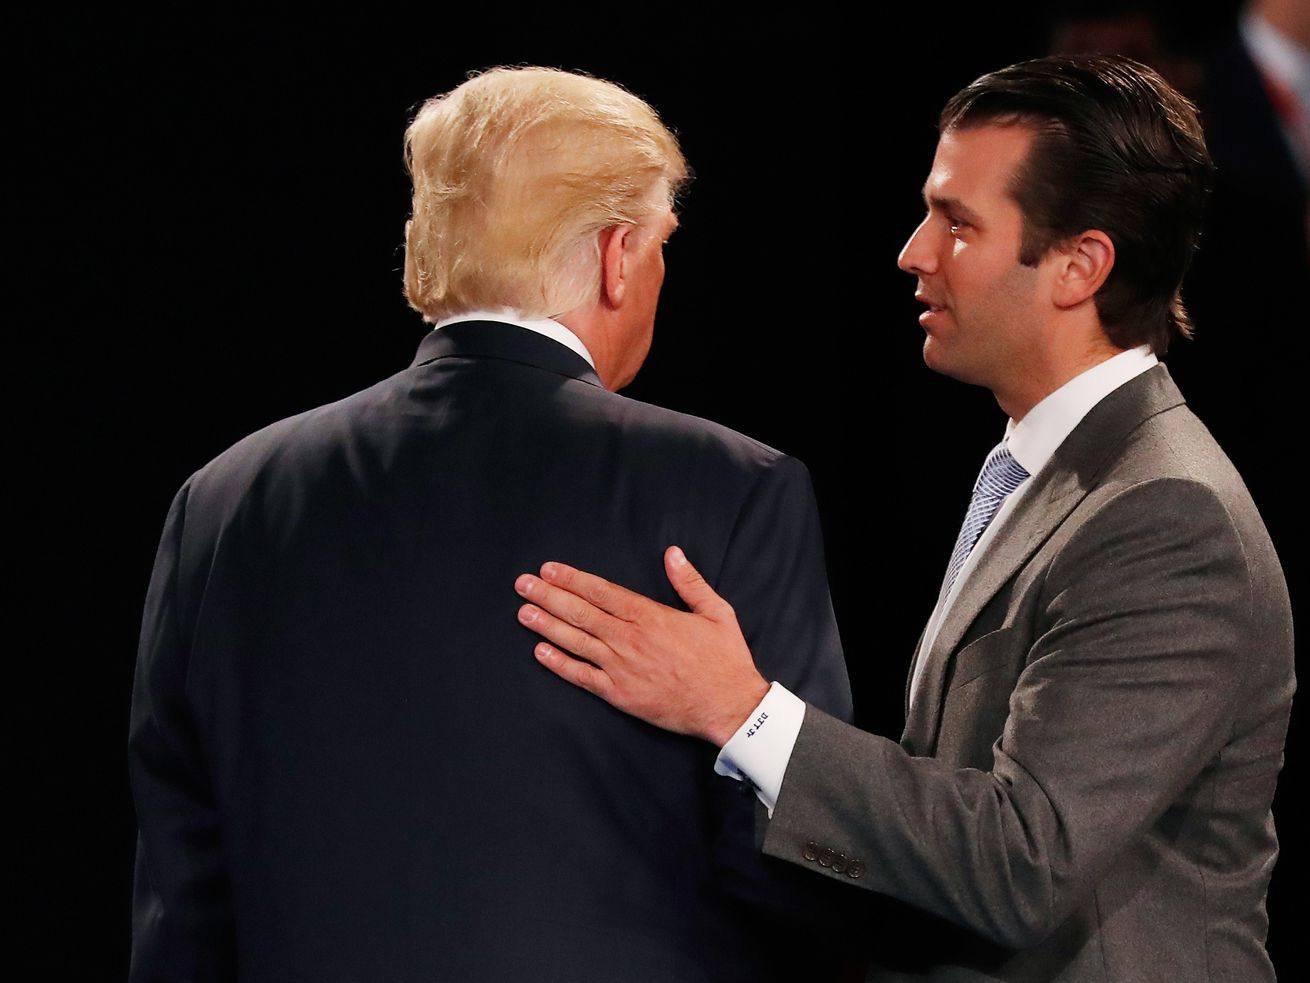 President Donald Trump and his son Donald Trump Jr. at a Republican presidential debate in 2016.